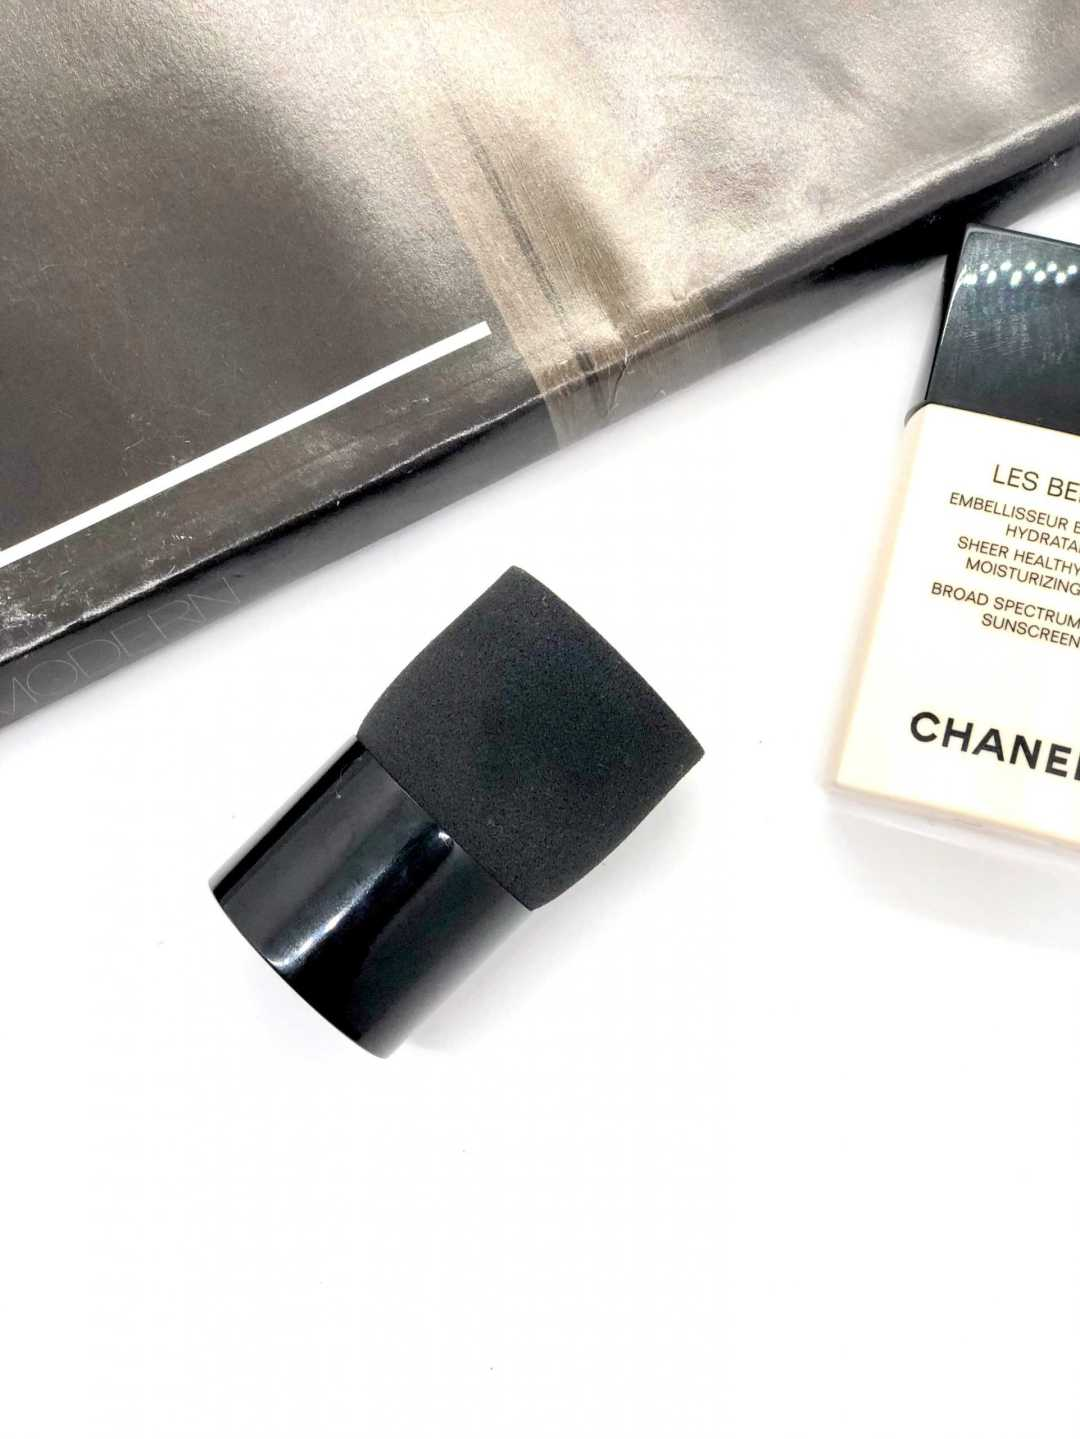 Les Pinceaux de Chanel Sponge Brush